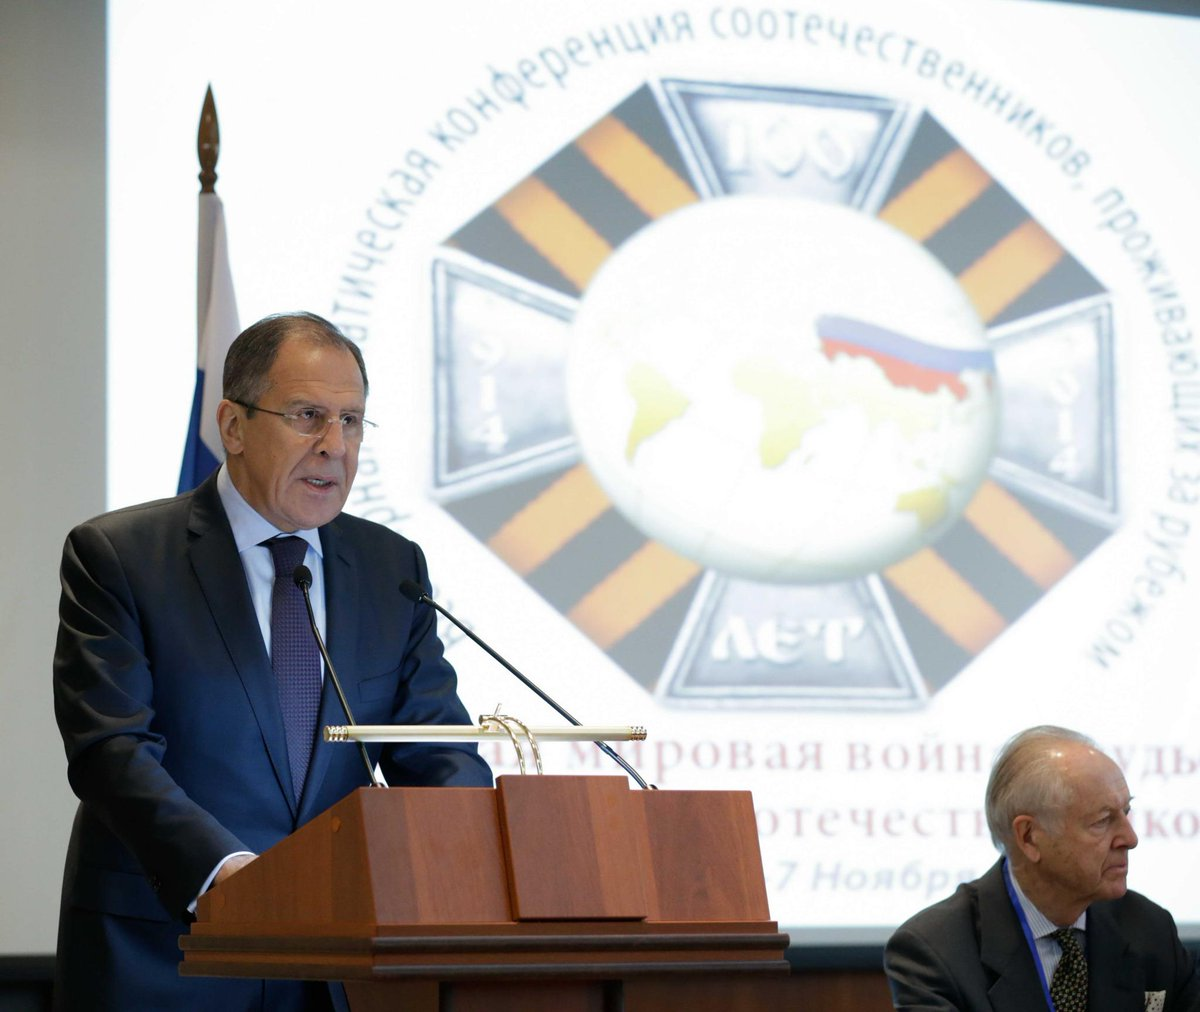 Address by Sergey #Lavrov at the conference #WWI and the Destinies of Russian Compatriots http://t.co/5rrUSyl8B4 http://t.co/TWvWXzcX9p